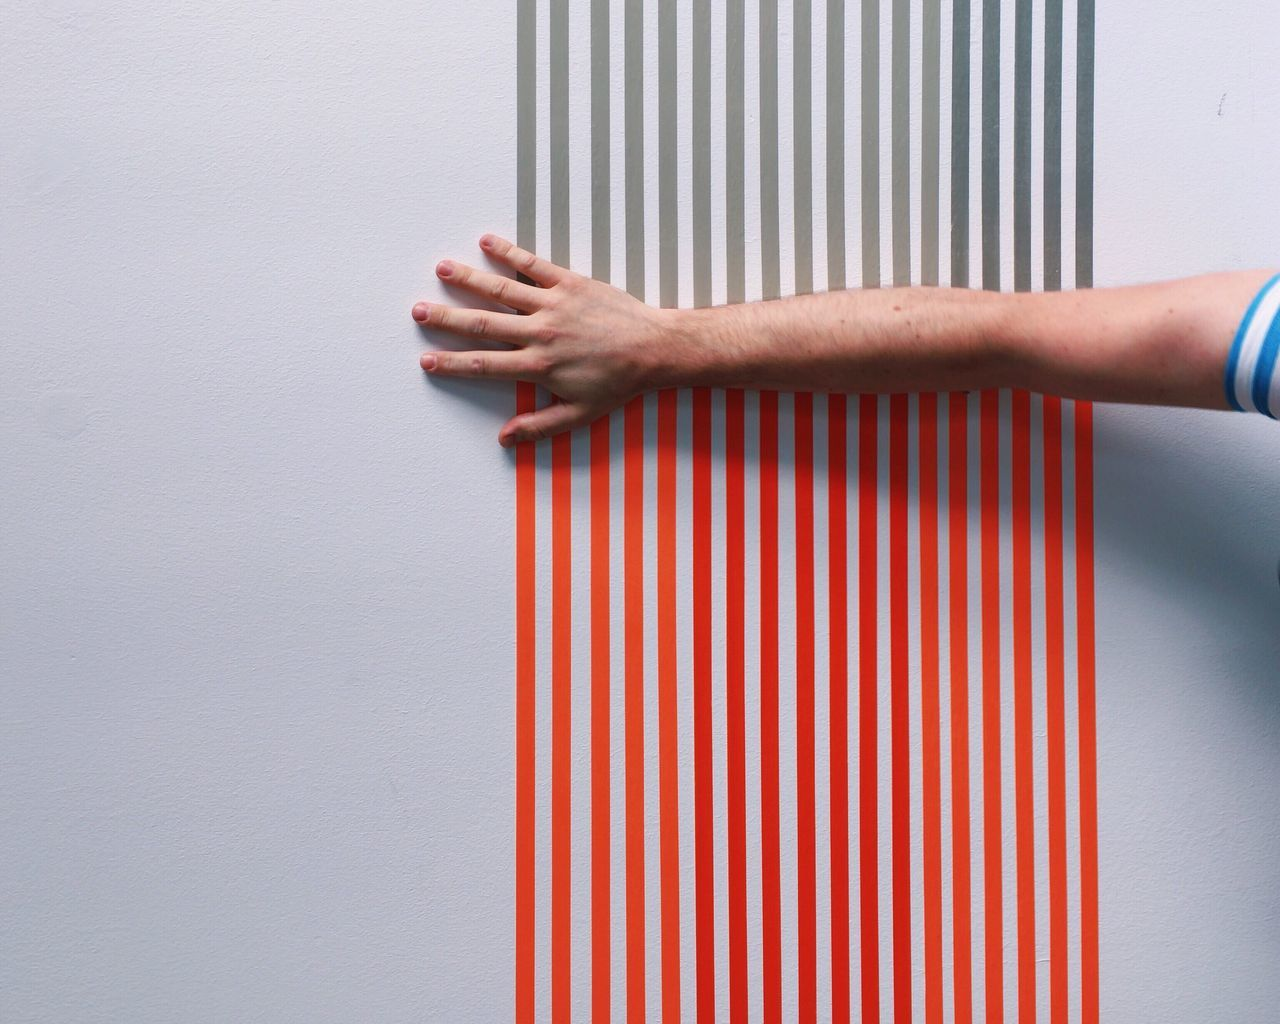 Stripes . Red BYOPaper! Focus On Foreground EyeEm Diversity TakeoverContrast Close Up Technology Pastel Power Pattern Pieces Break The Mold Pattern, Texture, Shape And Form Geometric Shapes Stripes Pattern Finding New Frontiers Getting Creative Fashion Abstract Creativity Composition Arrangement Minimalism Minimalobsession Minimal Beautifully Organized Shootermag Art Is Everywhere